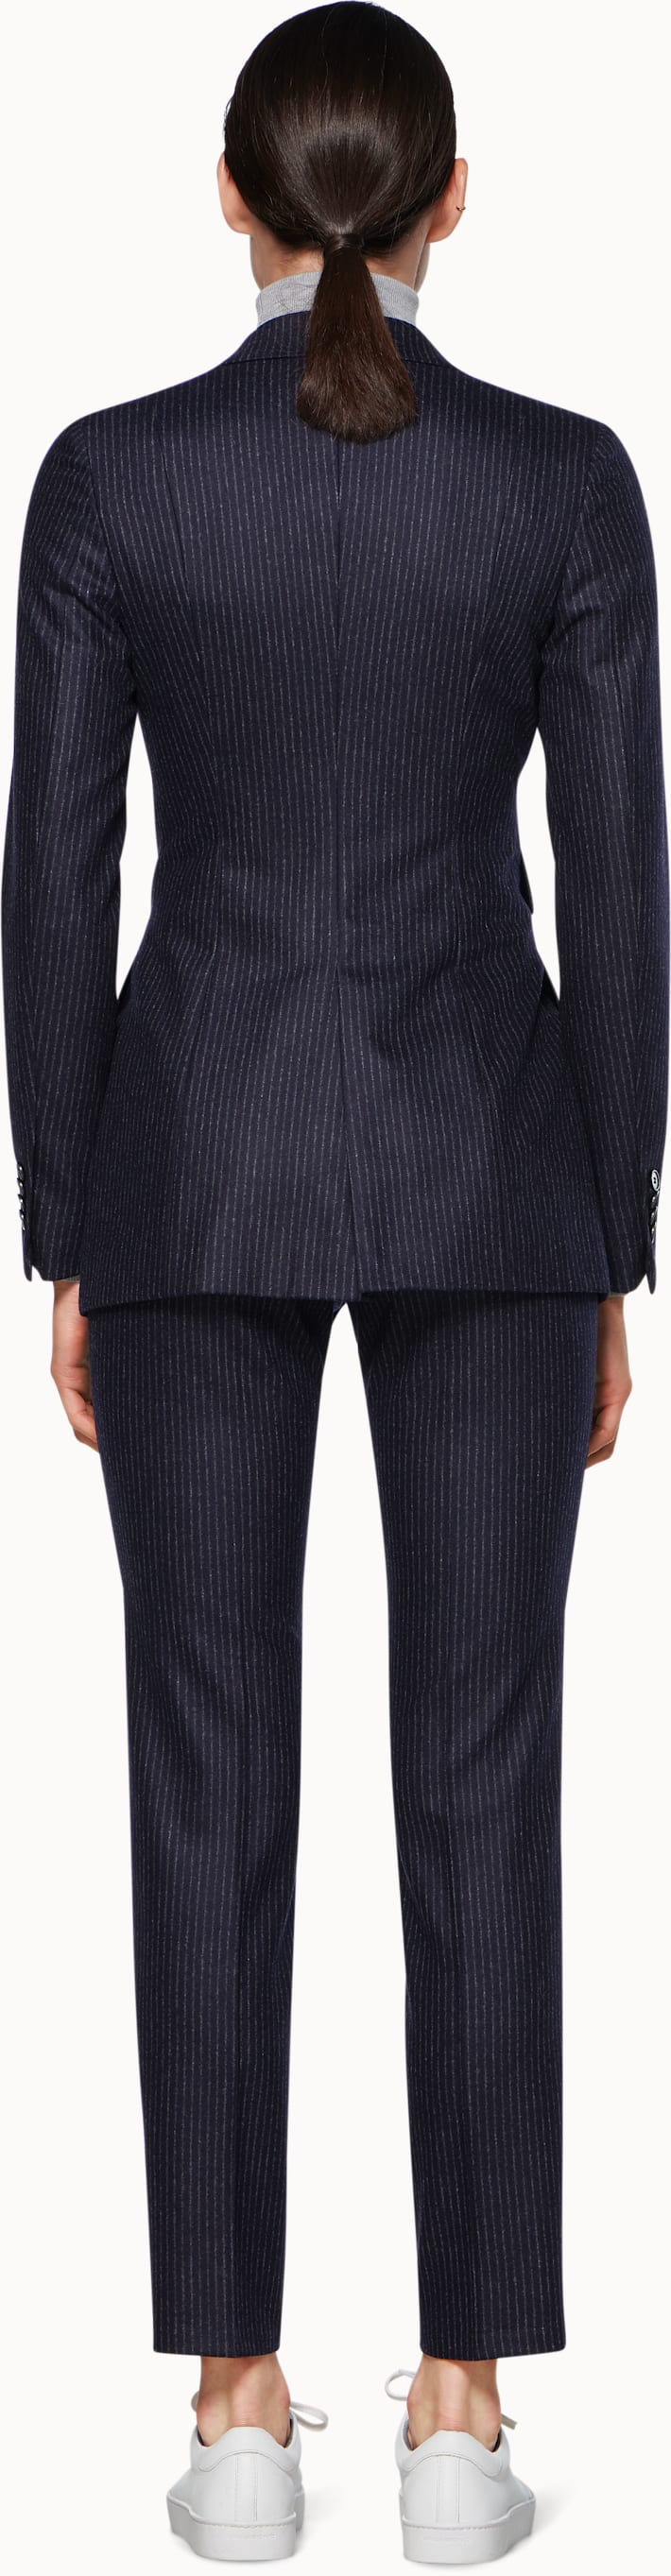 Palermo Navy Striped Suit